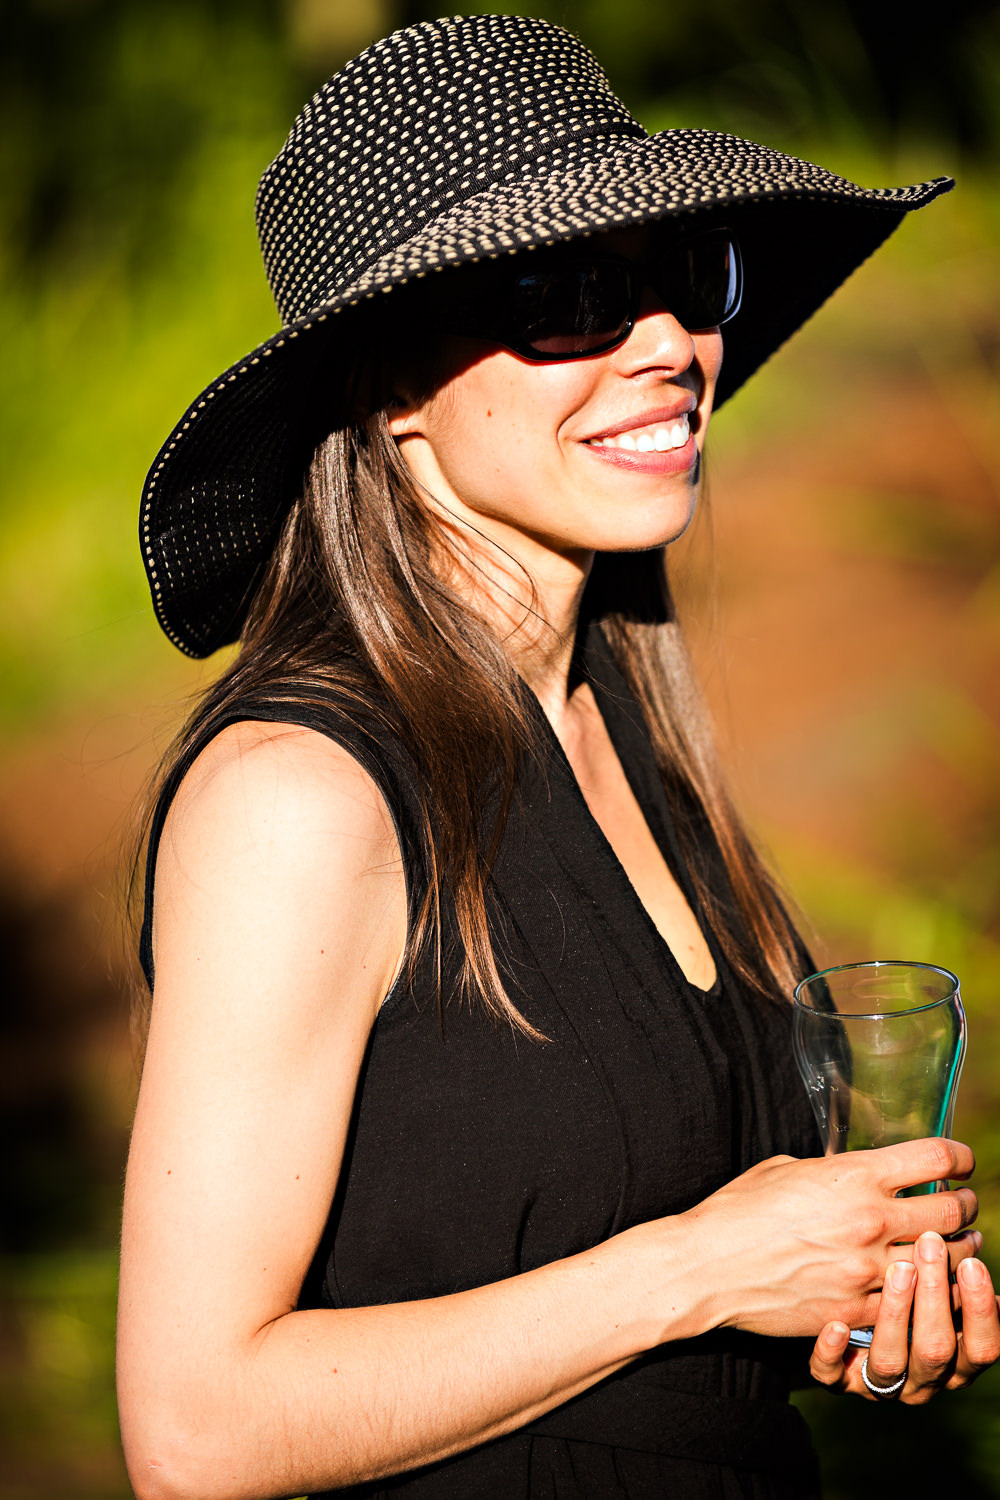 mcleod-montana-wedding-guest-large-sunhat.jpg